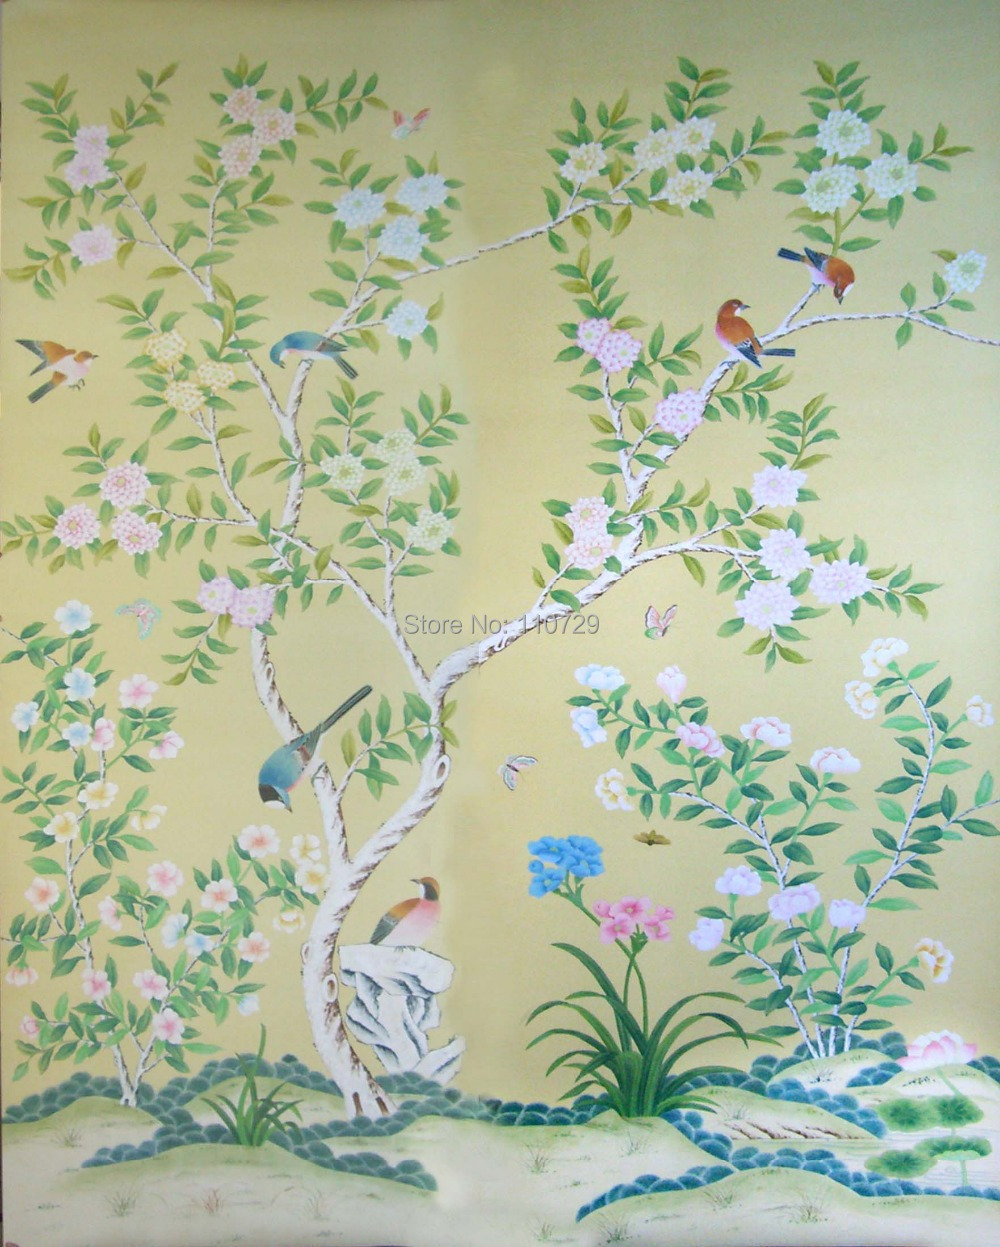 Decoration Material Hand Painted Silk Wallpaper Painting Flowers